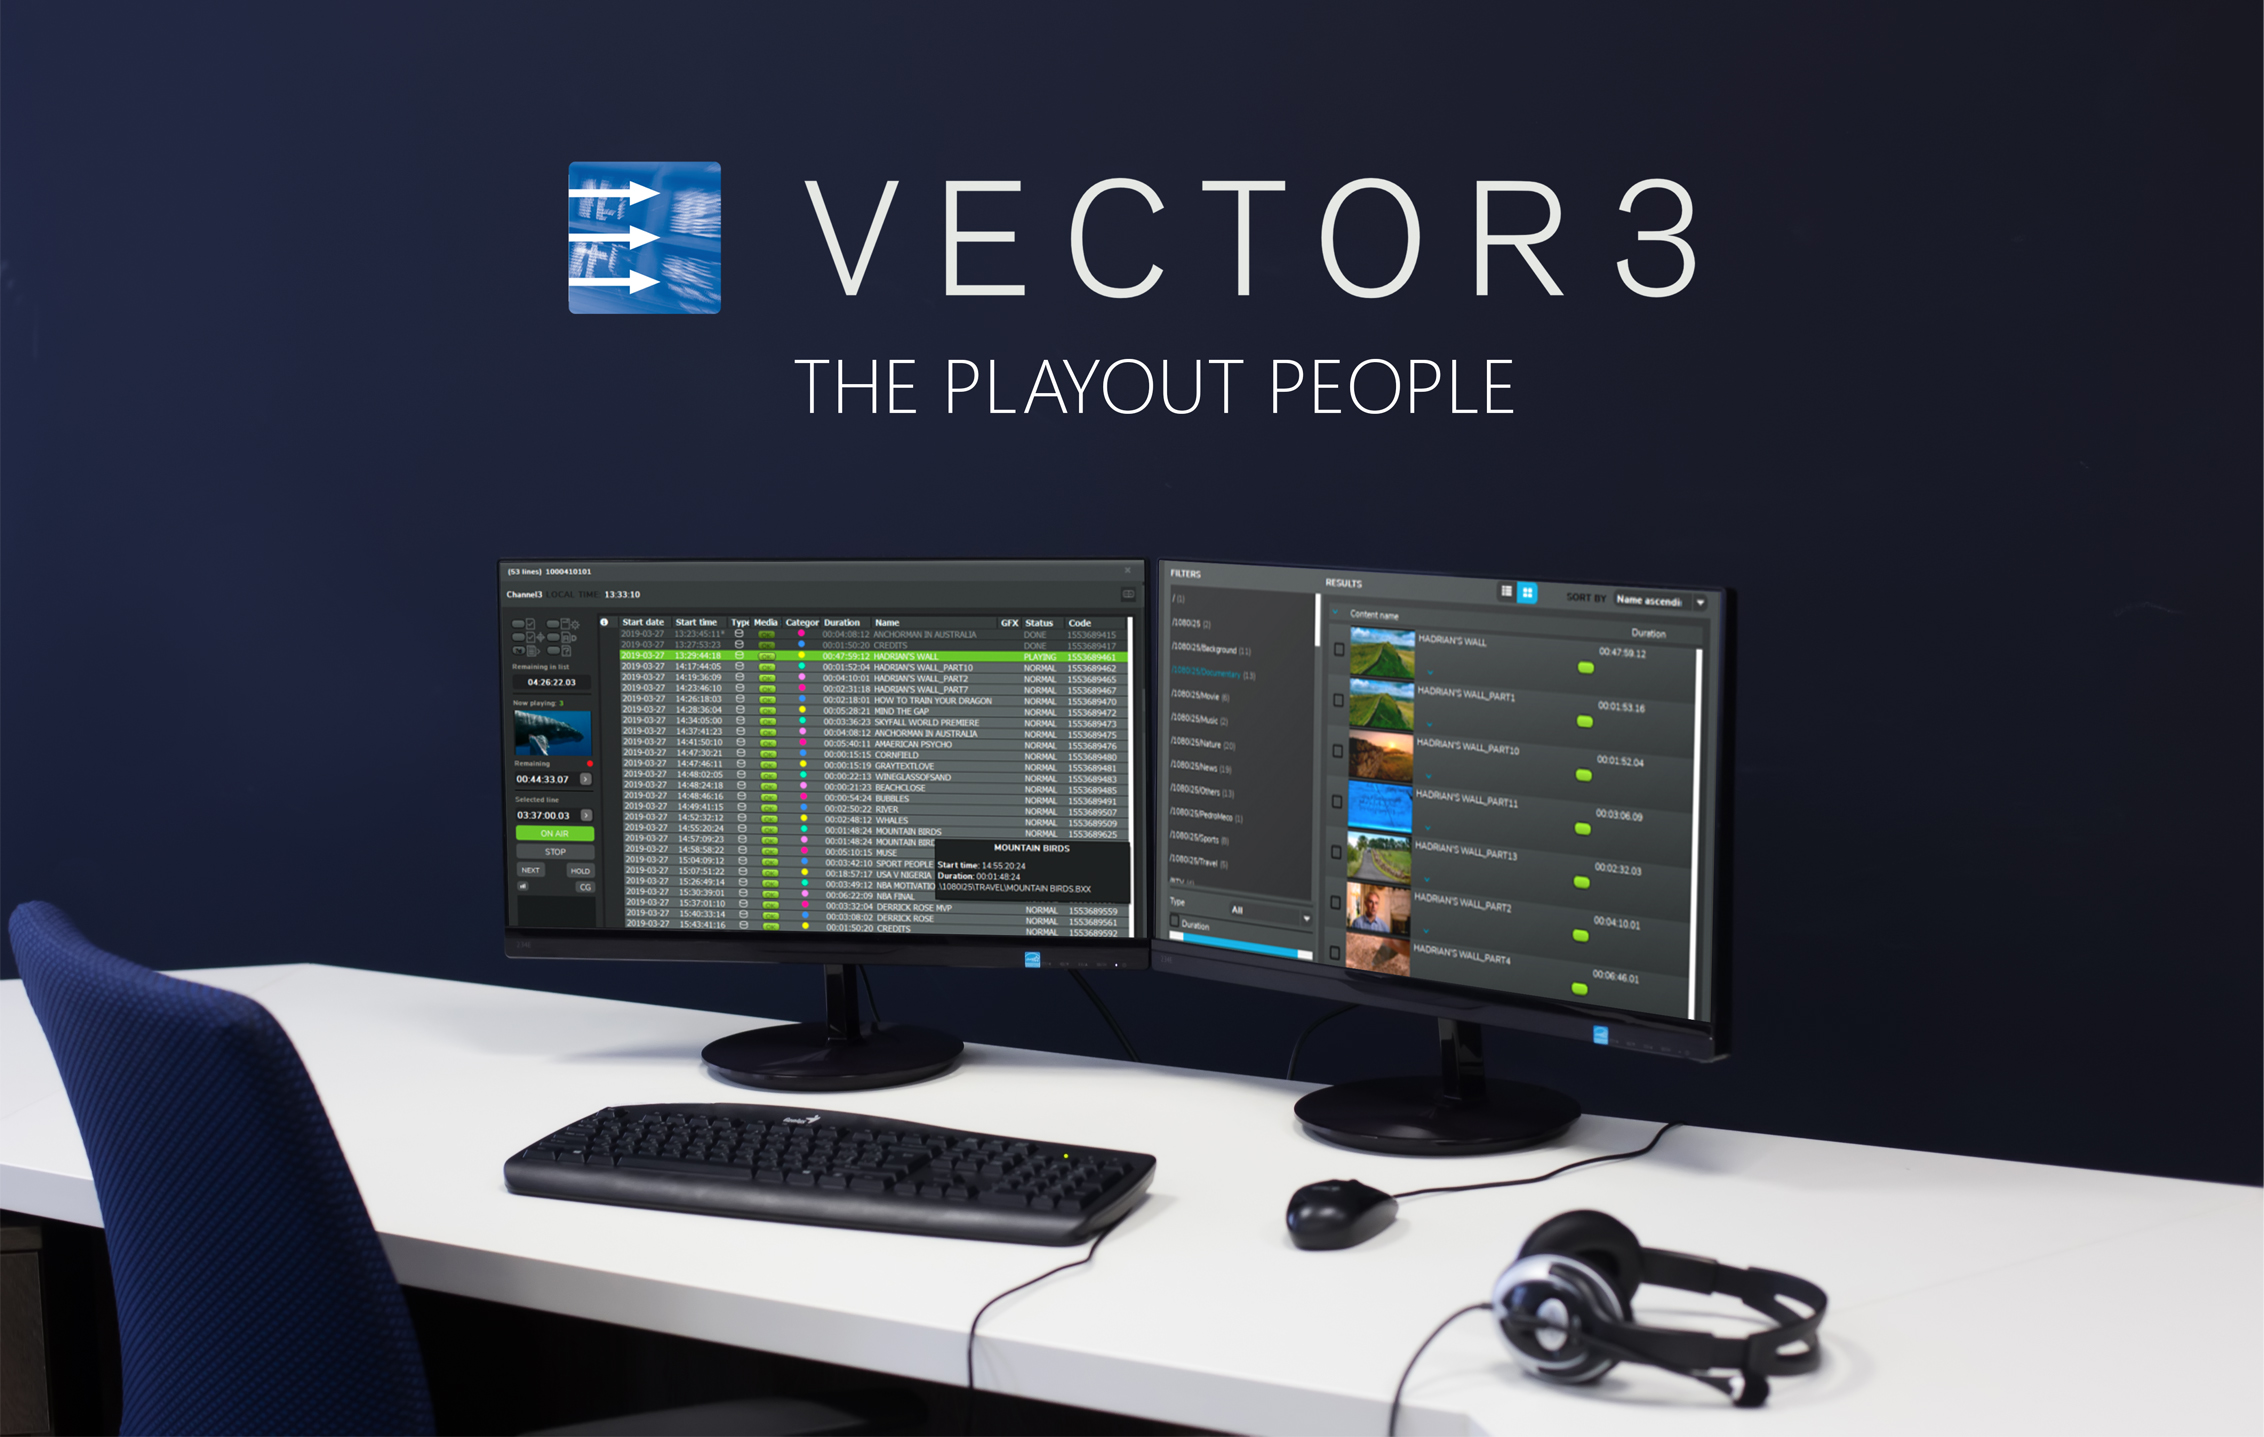 NRDmultimedia acquires the Vector 3 technology to be incorporated as a new line of business